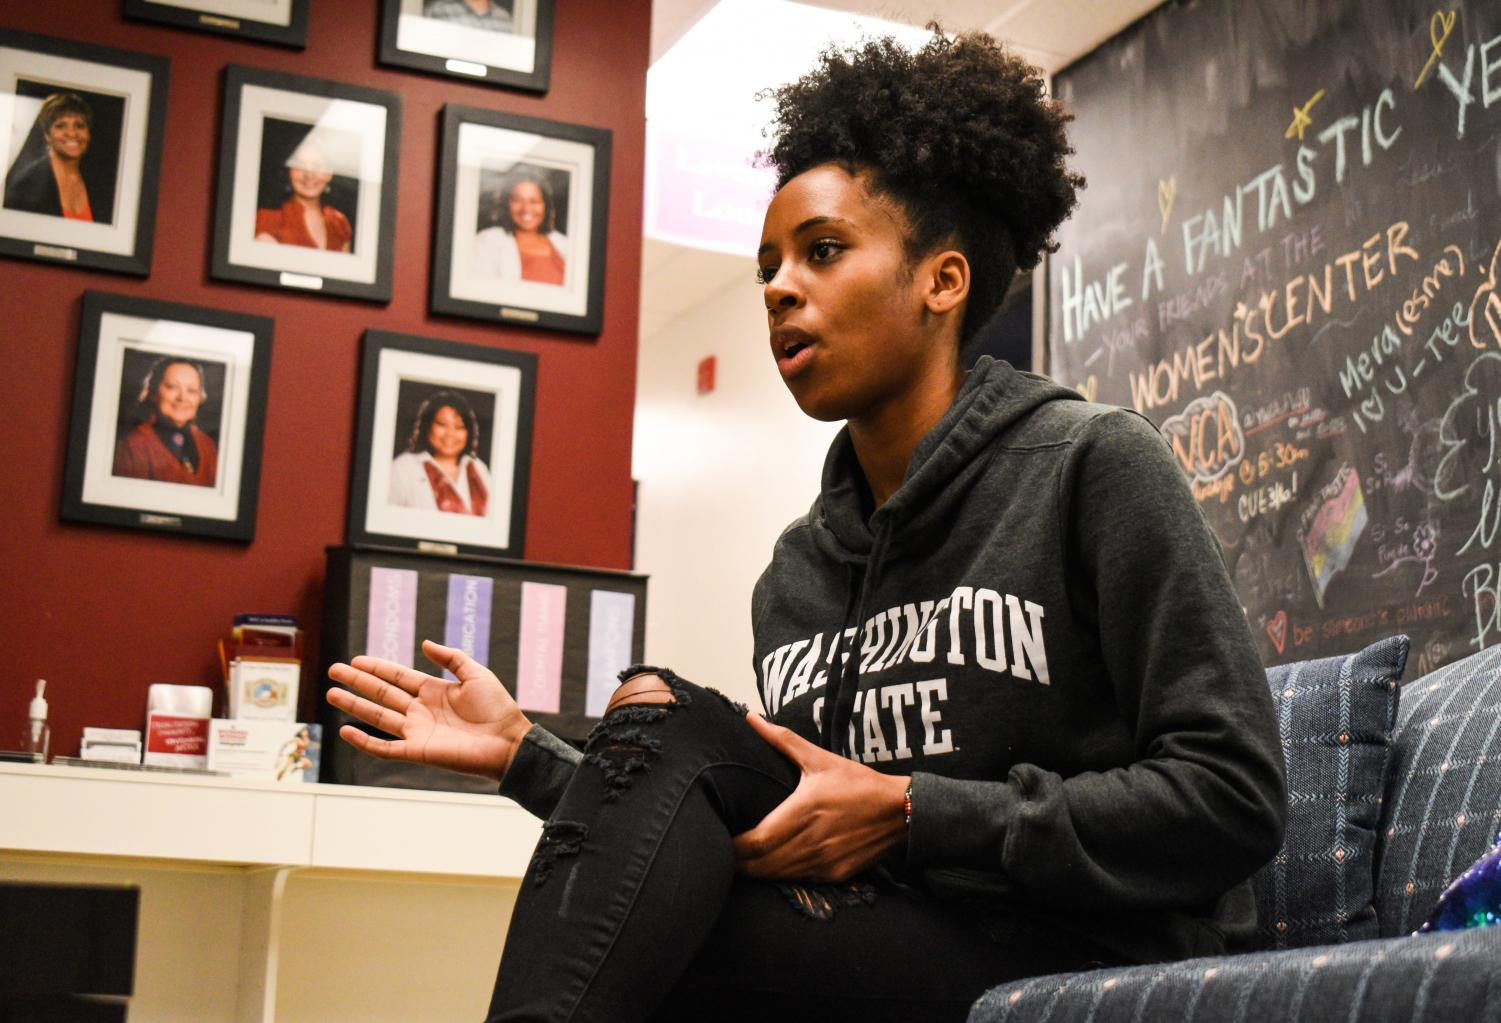 Jazmyne Jackson, current president of the Black Women's Caucus, highlights her experiences with getting involved on campus on Oct. 28 at the Women's Resource Center in Wilson-Short Hall.